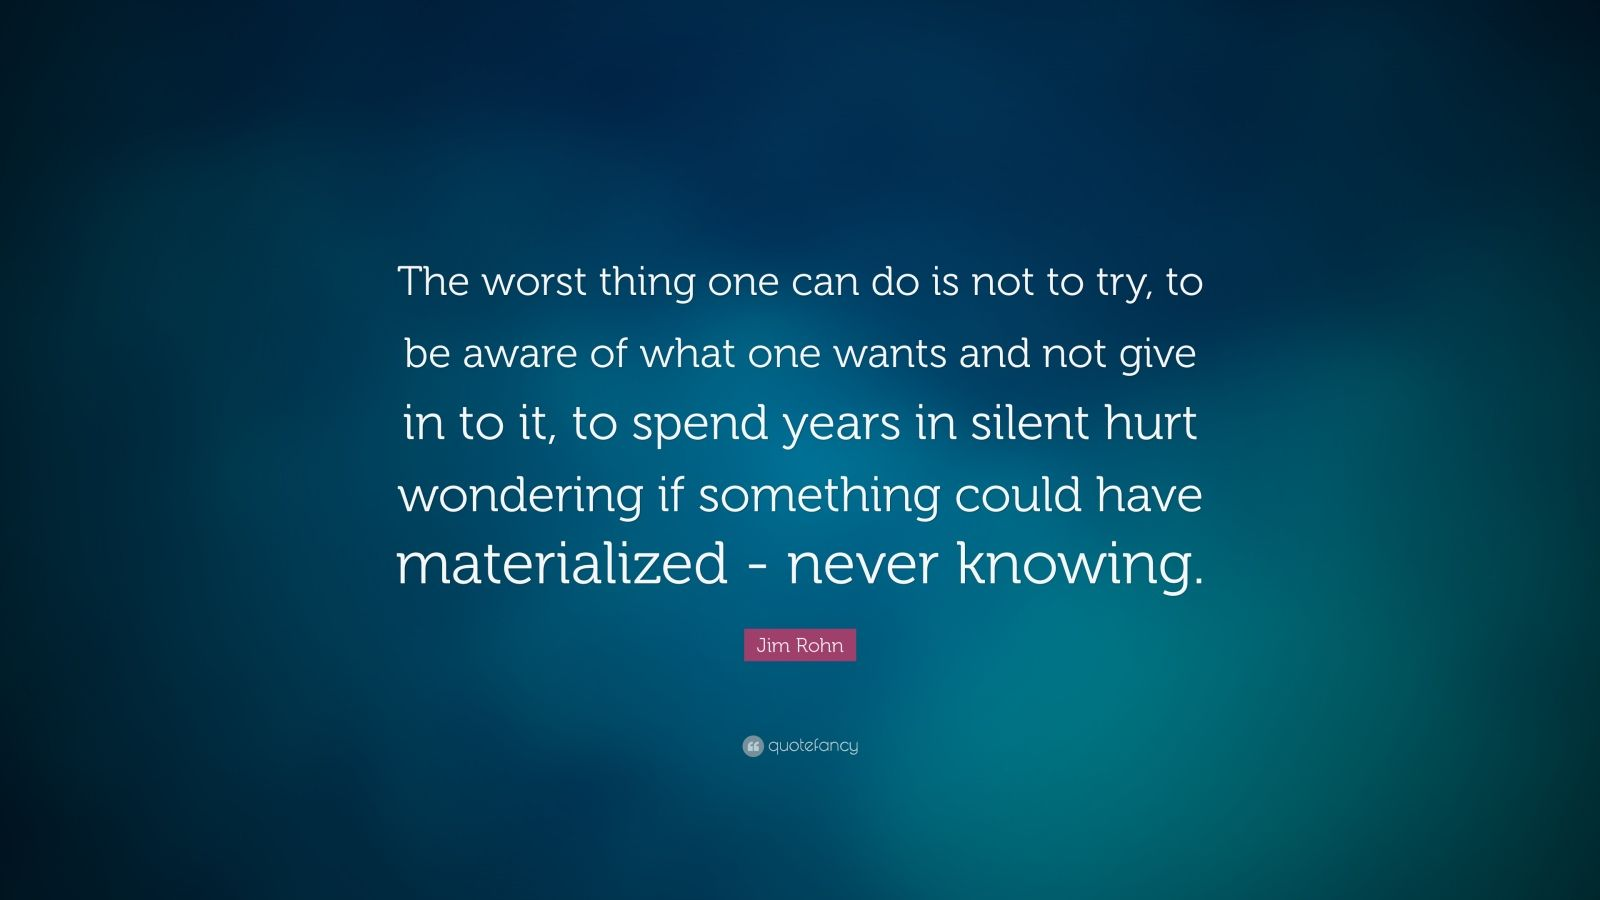 """Jim Rohn Quote: """"The worst thing one can do is not to try, to be aware of what one wants and not give in to it, to spend years in silent hurt wondering if something could have materialized - never knowing."""""""